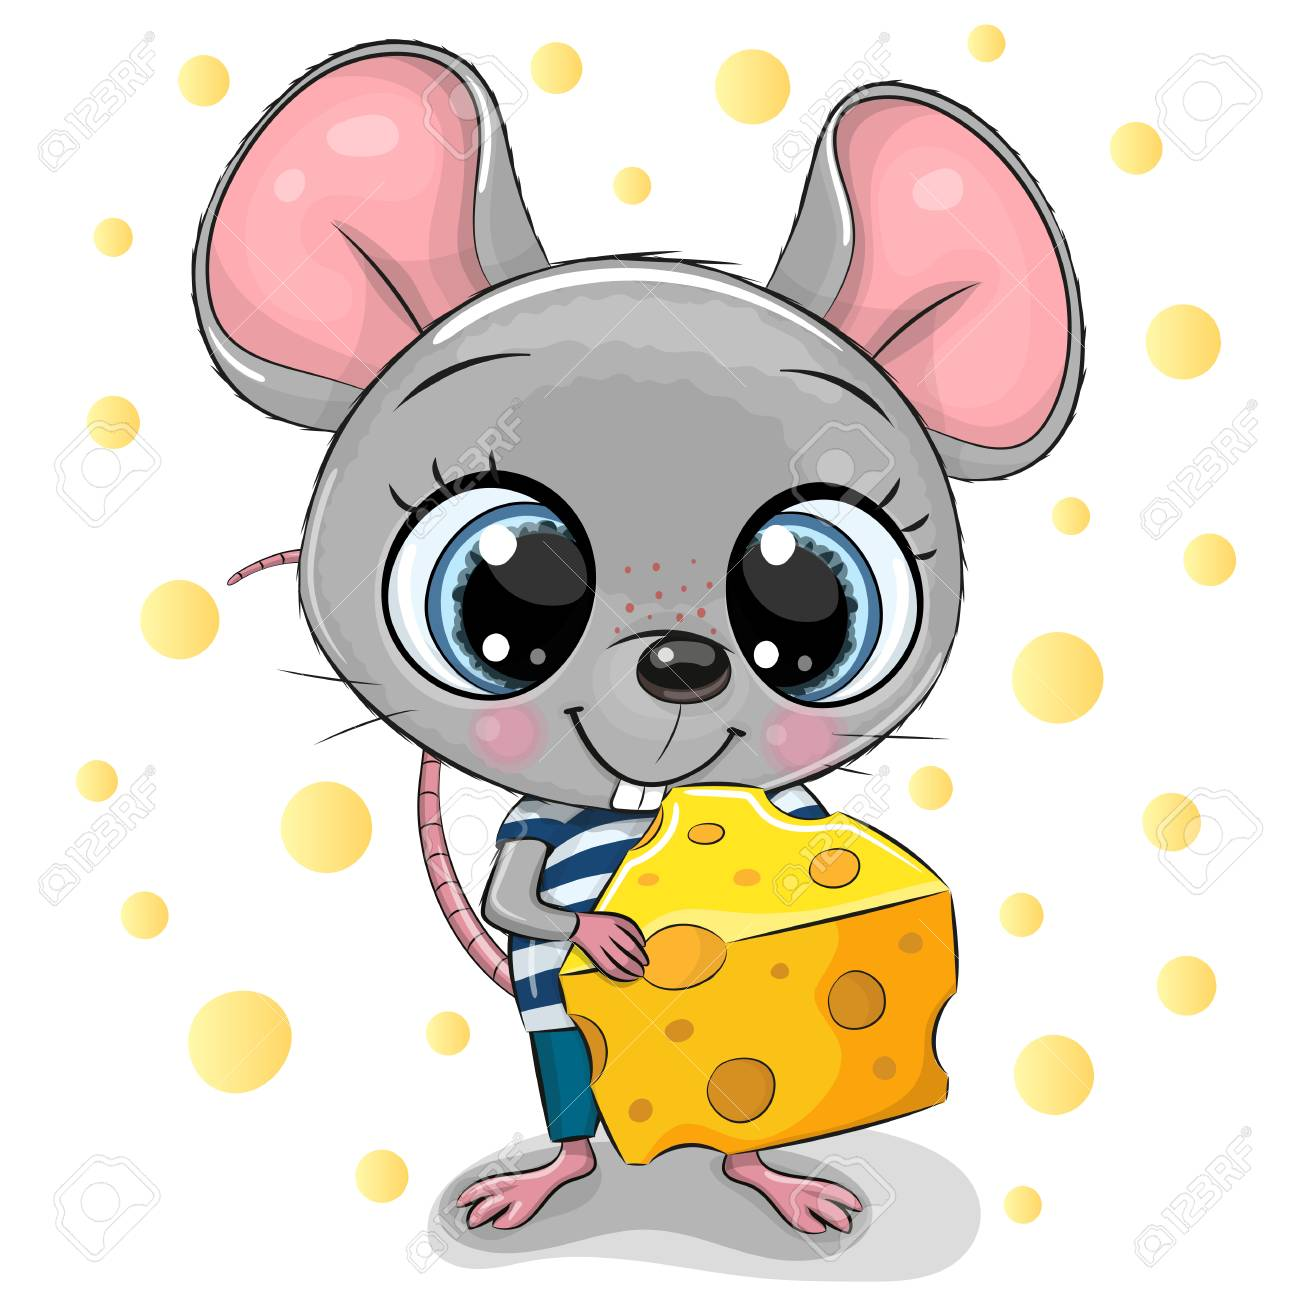 Cute Cartoon Mouse with big eyes and cheese - 123042395